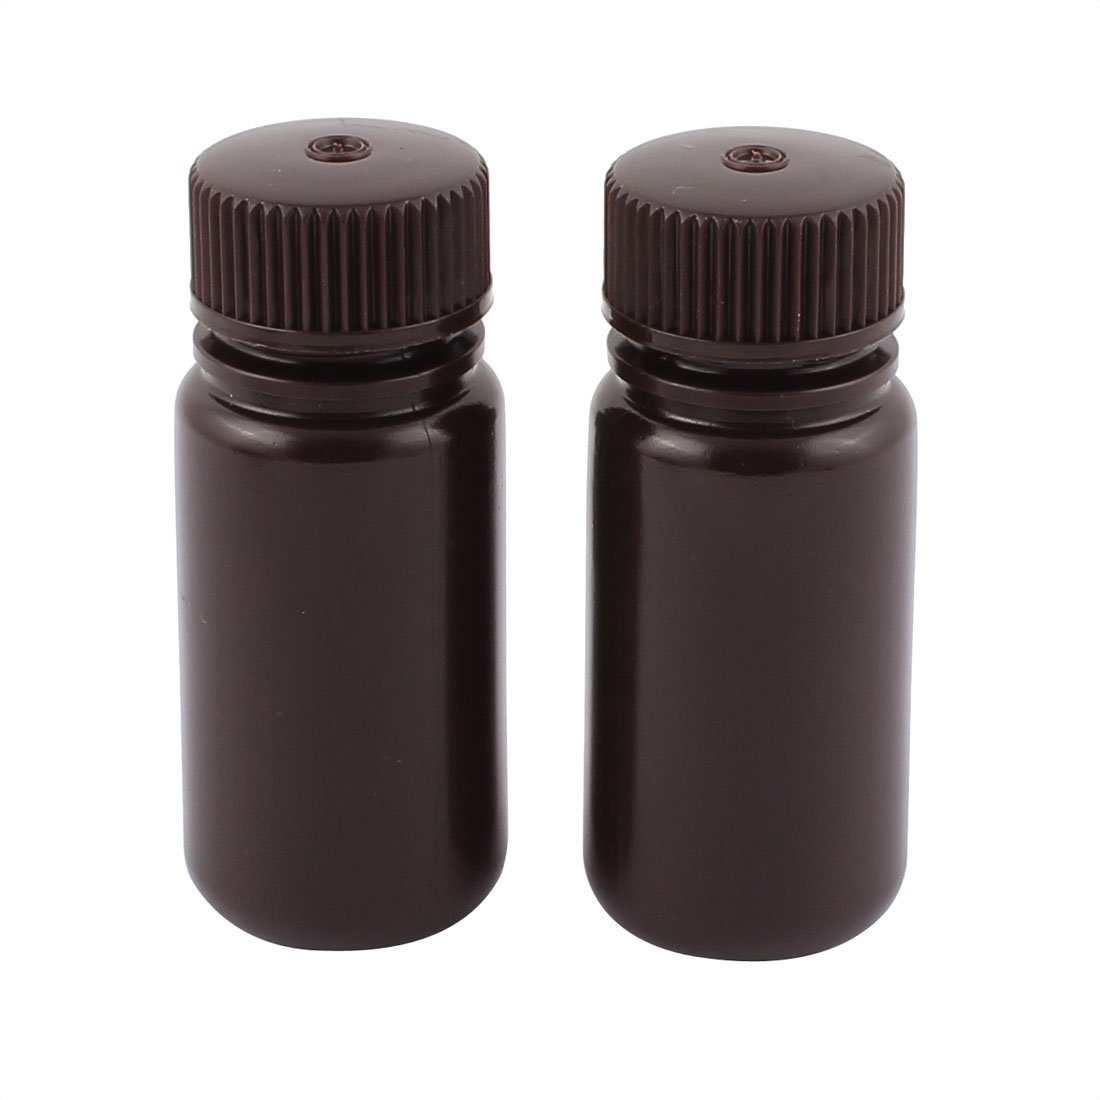 sourcingmap® 2Pcs 100ml Brown Plastic Wide Mouth Sealed Reagent Bottle Laboratory Supplies